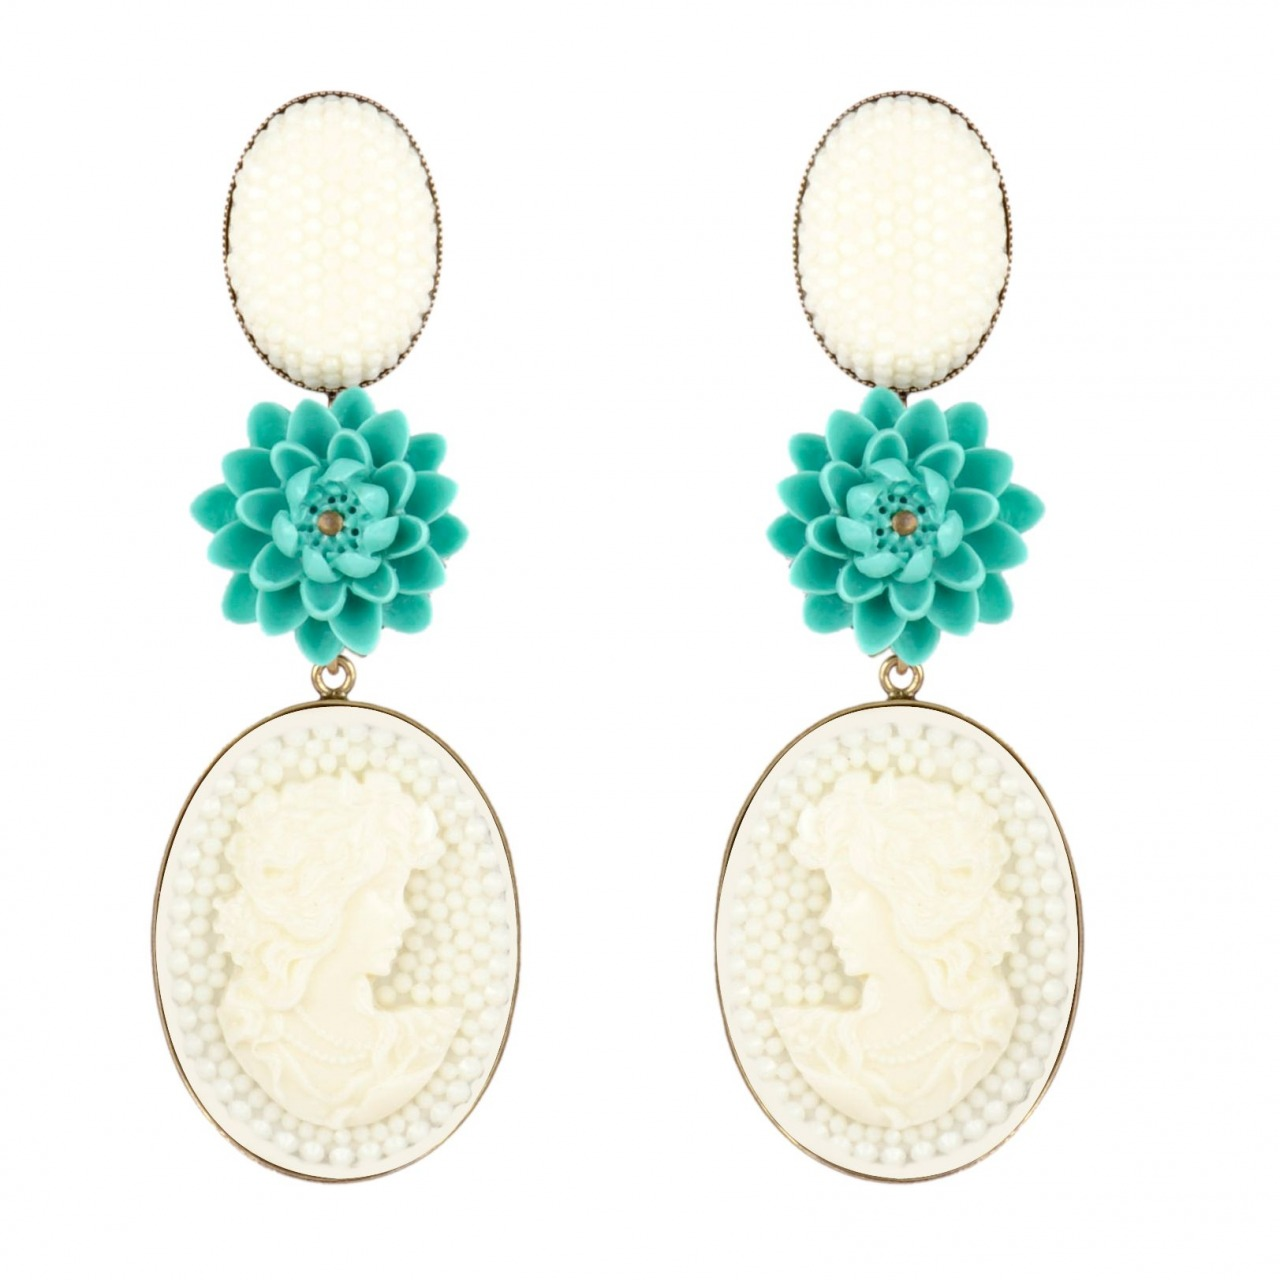 Diva big earrings